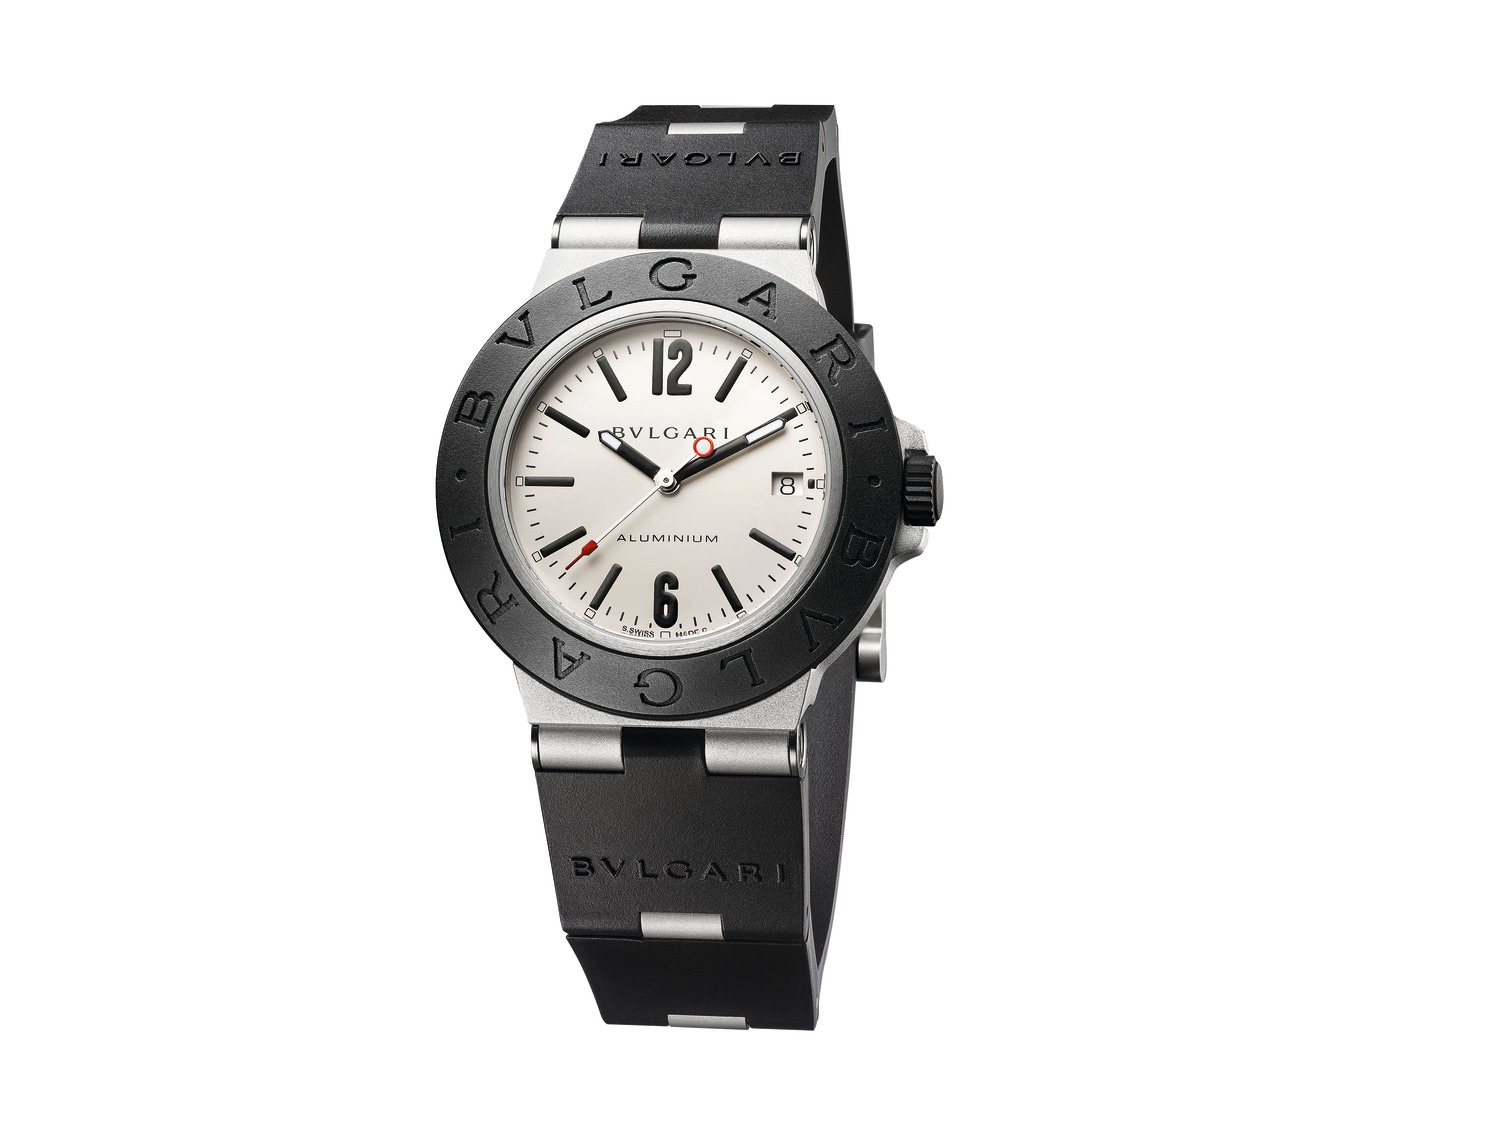 BVLGARI Bvlgari Aluminium watch with